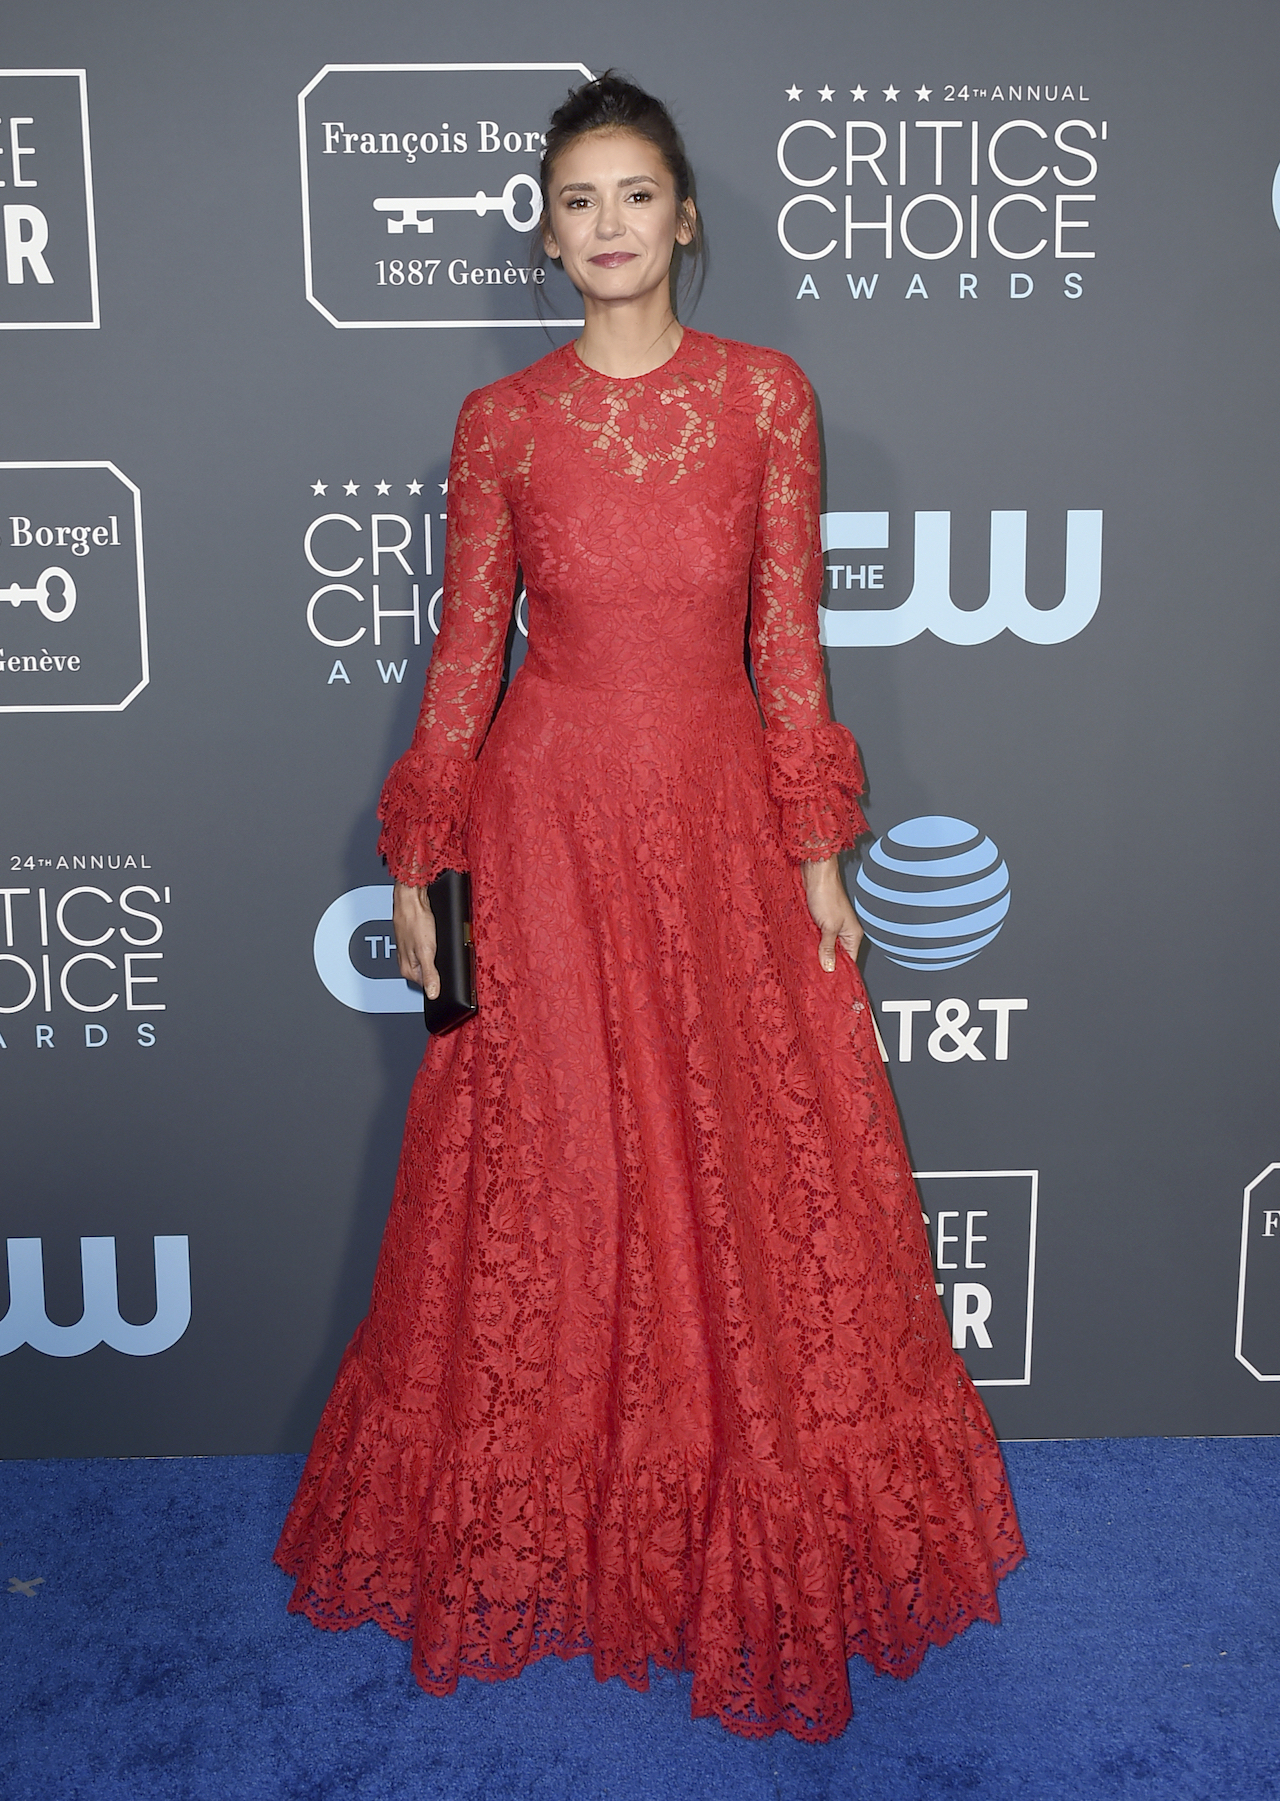 <div class='meta'><div class='origin-logo' data-origin='AP'></div><span class='caption-text' data-credit='Jordan Strauss/Invision/AP'>Nina Dobrev arrives at the 24th annual Critics' Choice Awards on Sunday, Jan. 13, 2019, at the Barker Hangar in Santa Monica, Calif.</span></div>